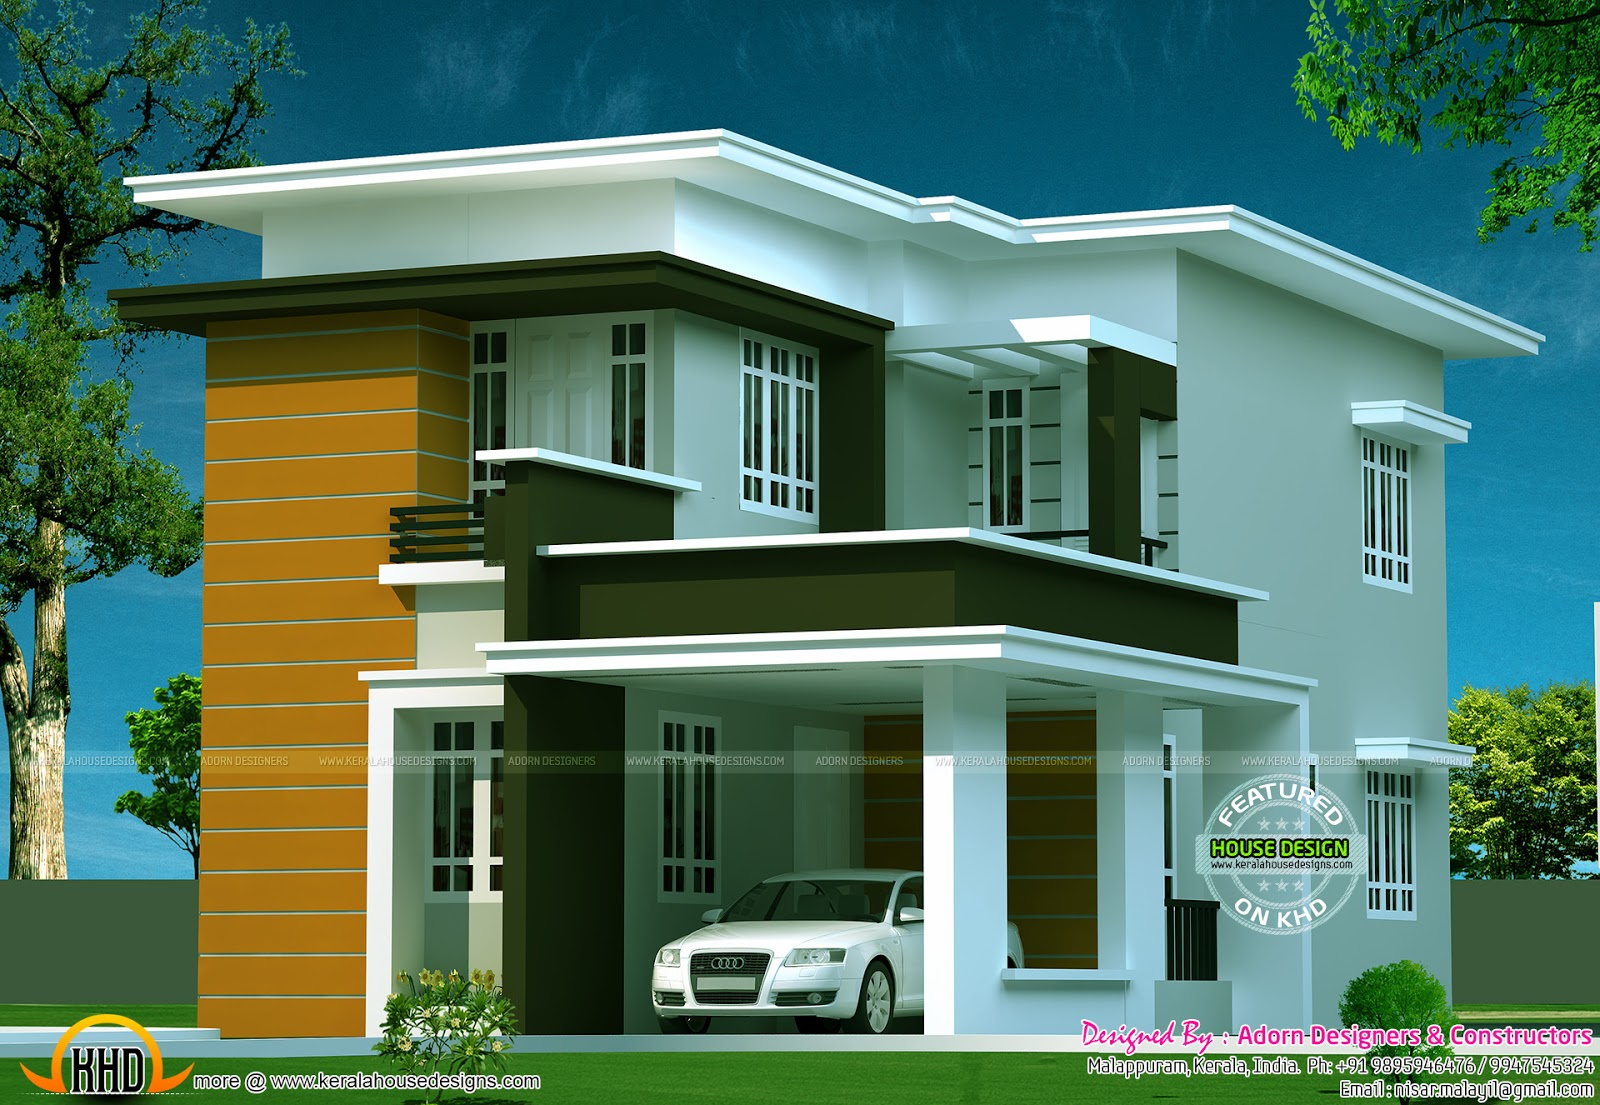 New flat roof house kerala home design and floor plans for New house design